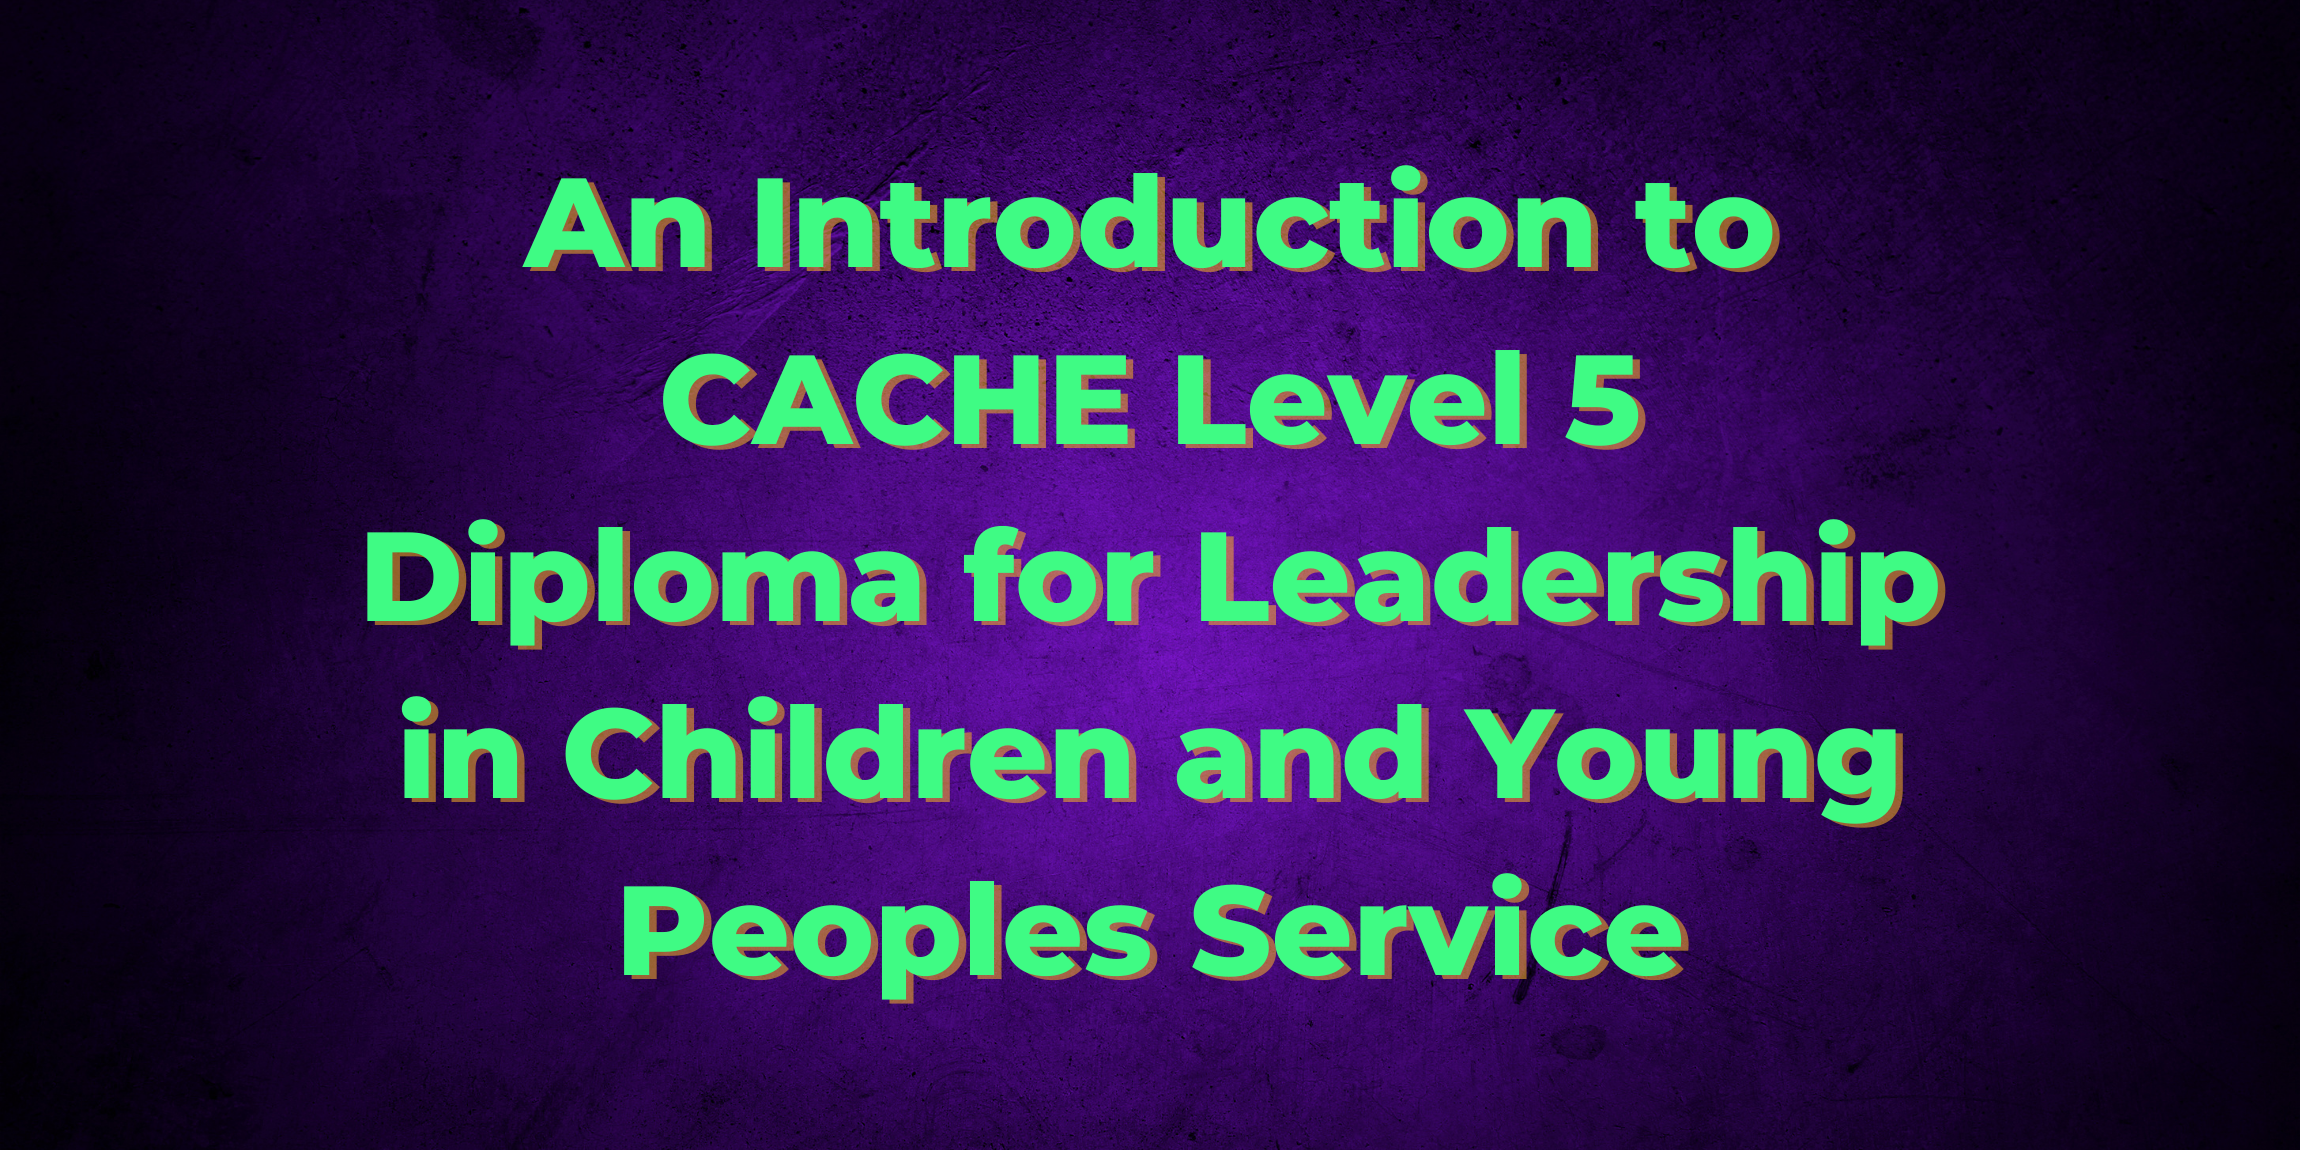 An Introduction to CACHE Level 5 Diploma